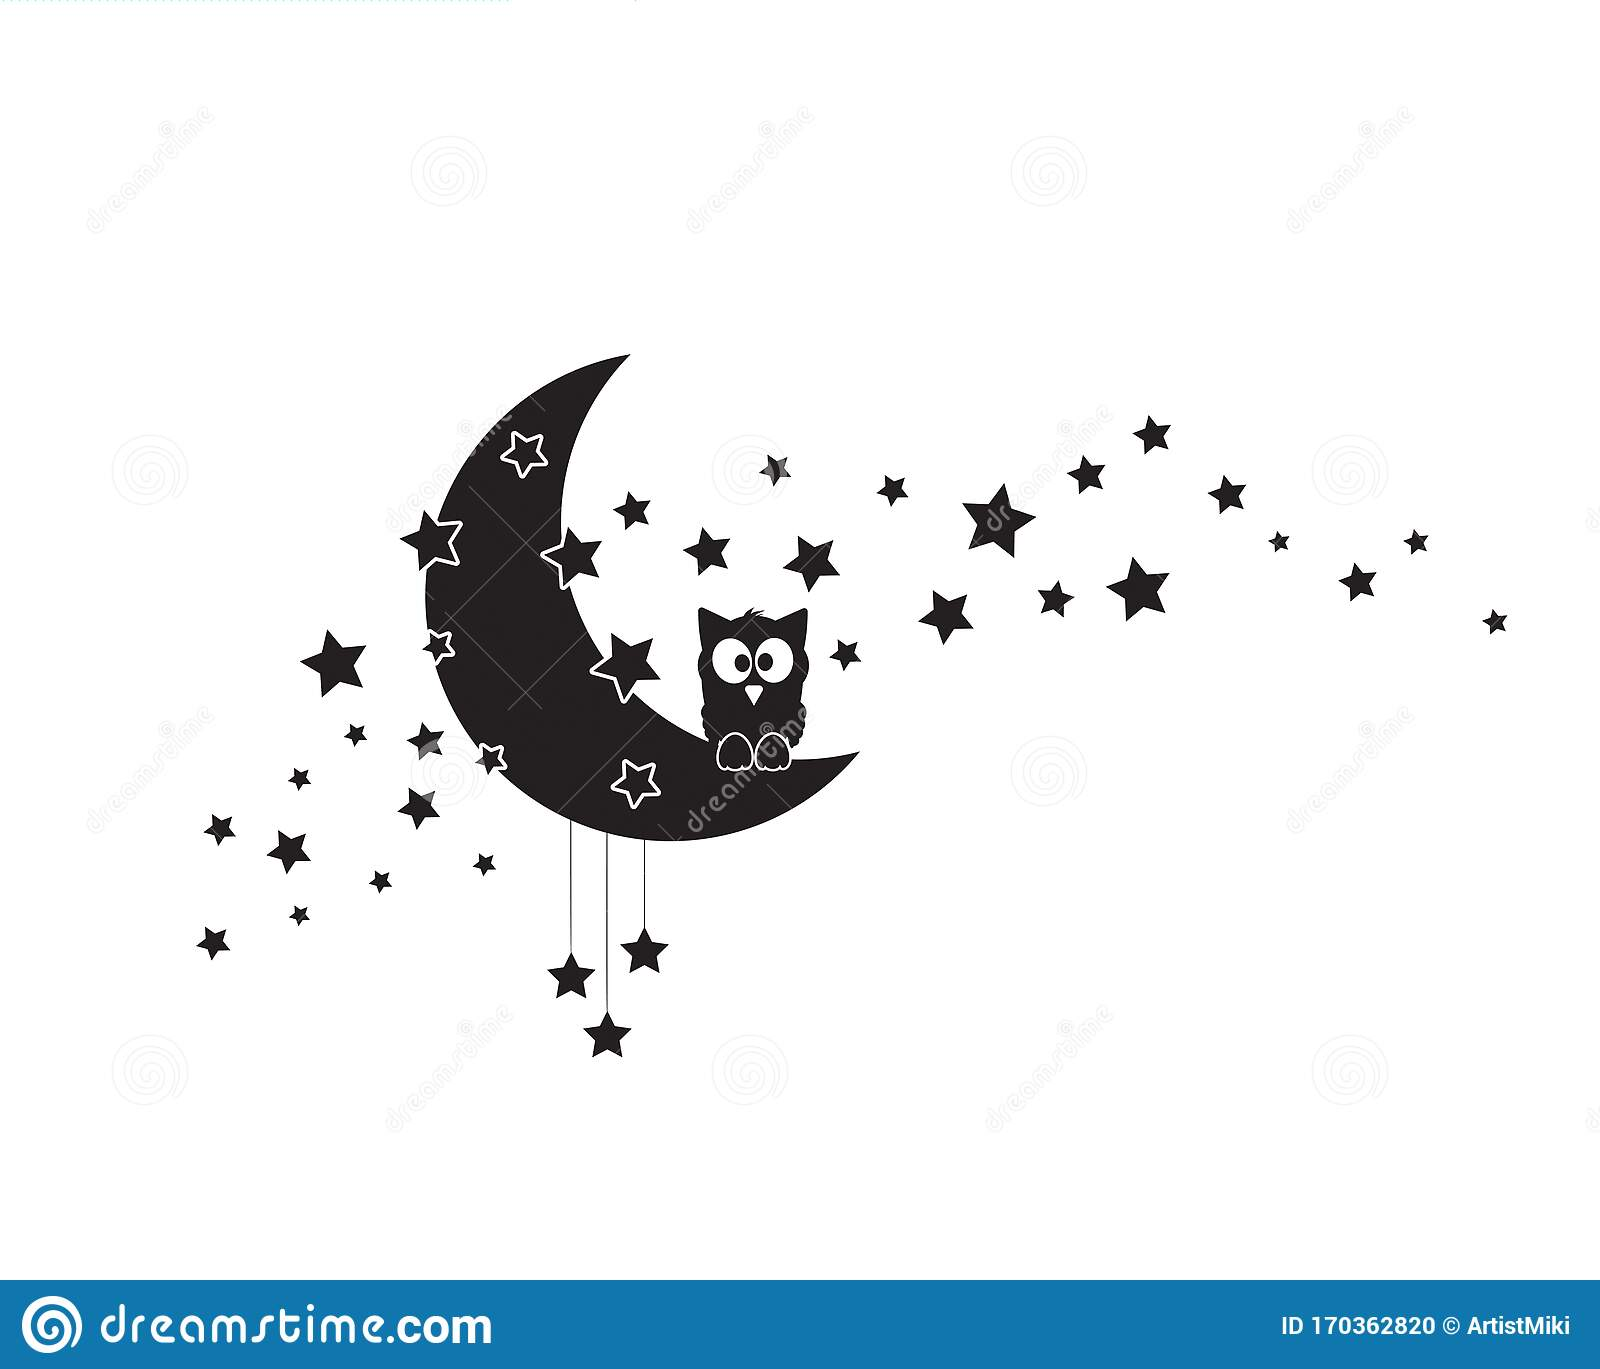 Owl Silhouette On Moon Vector Moon With Stars Illustration Wall Art Design Wall Artwork Wall Decals Stock Vector Illustration Of Decals Black 170362820